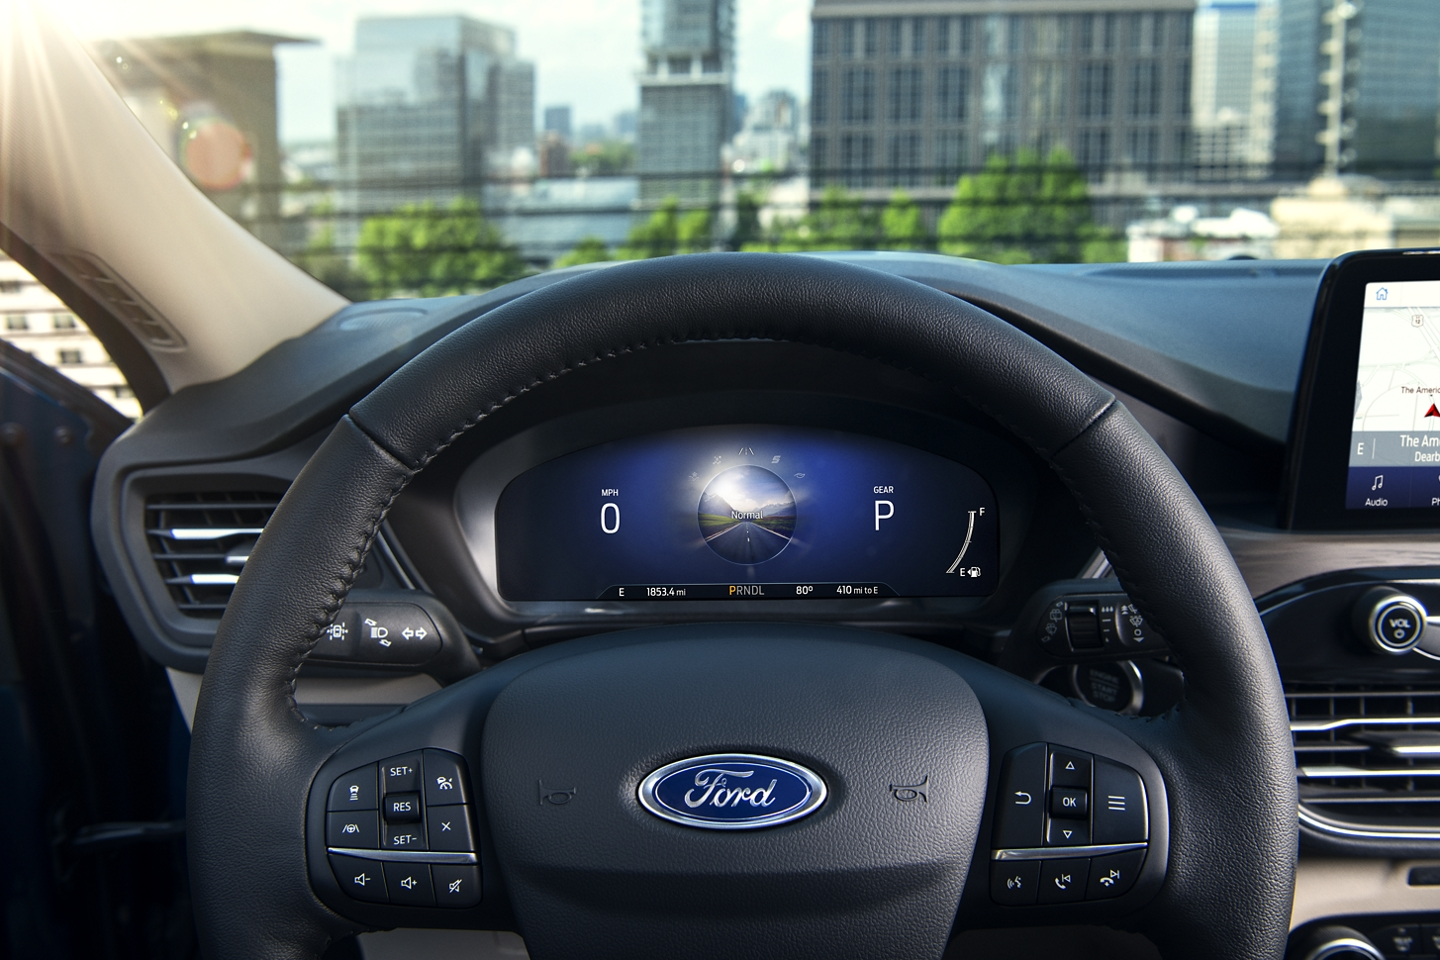 Ford Escape 2020 dashboard